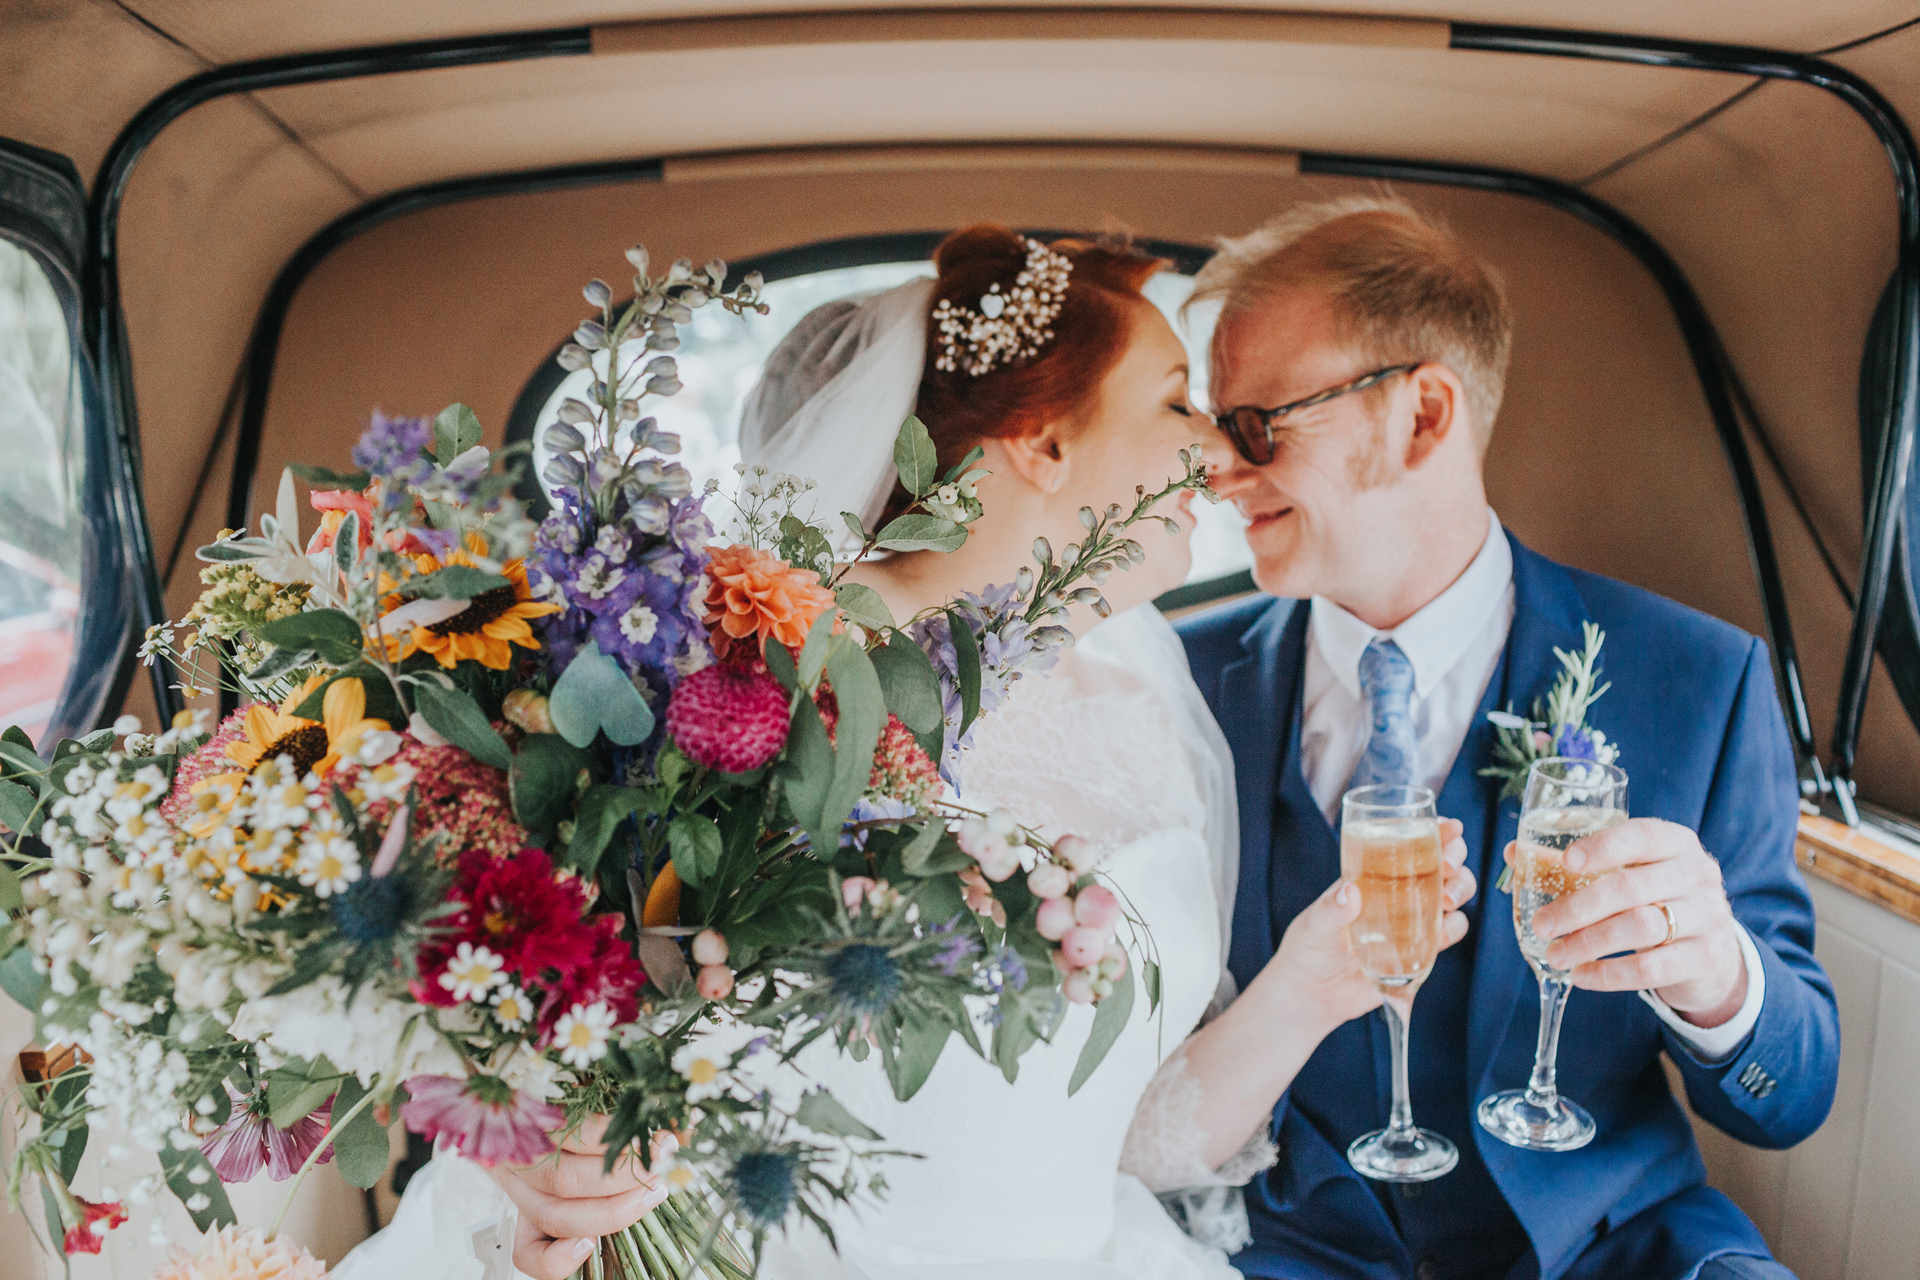 Bride and groom have a kiss in the back on the wedding car, focus on the brides bouquet.